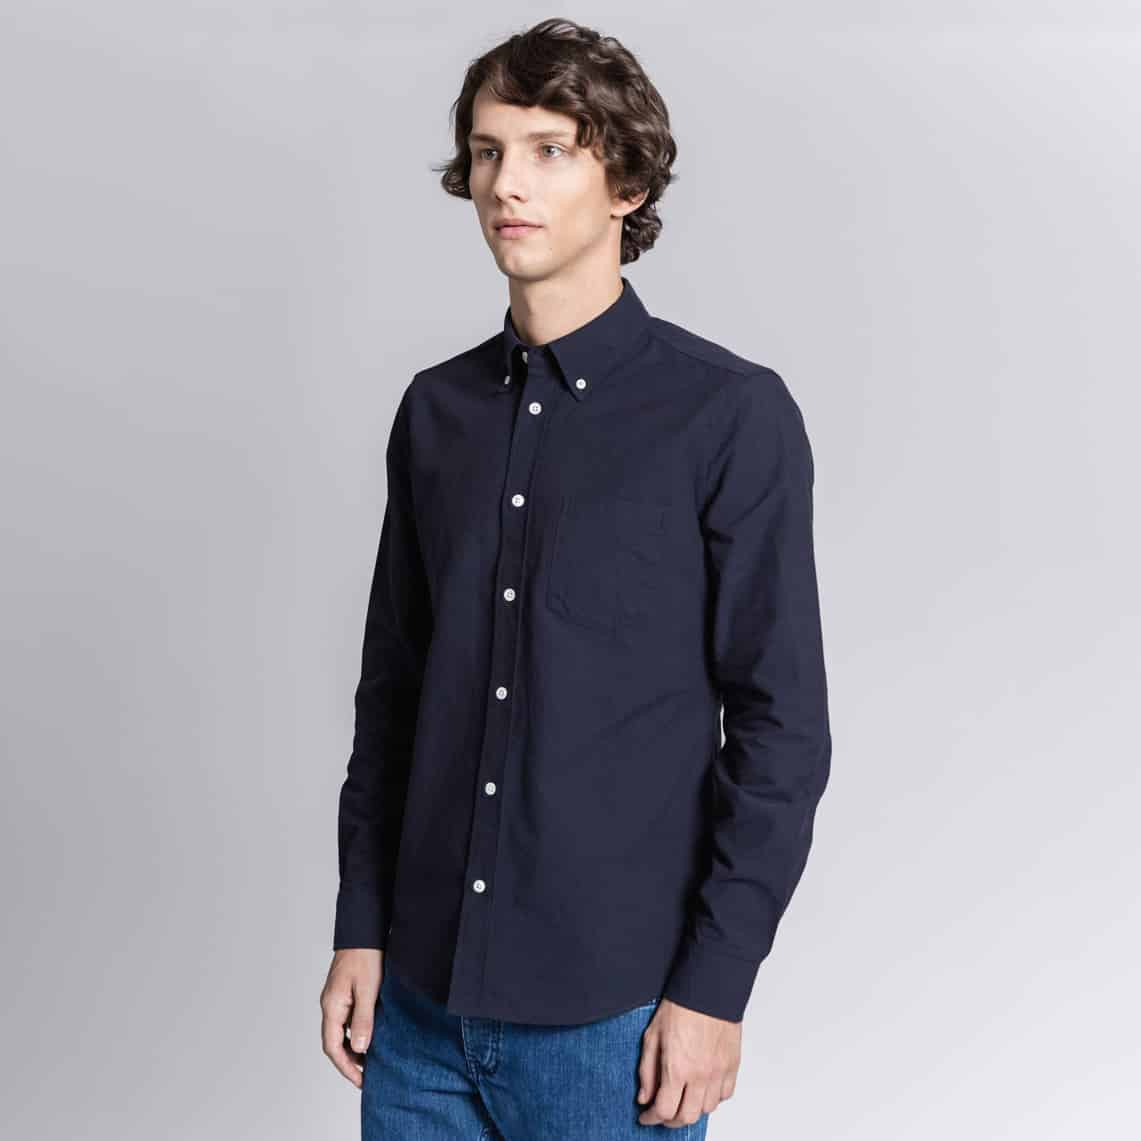 Asket - The Oxford Shirt